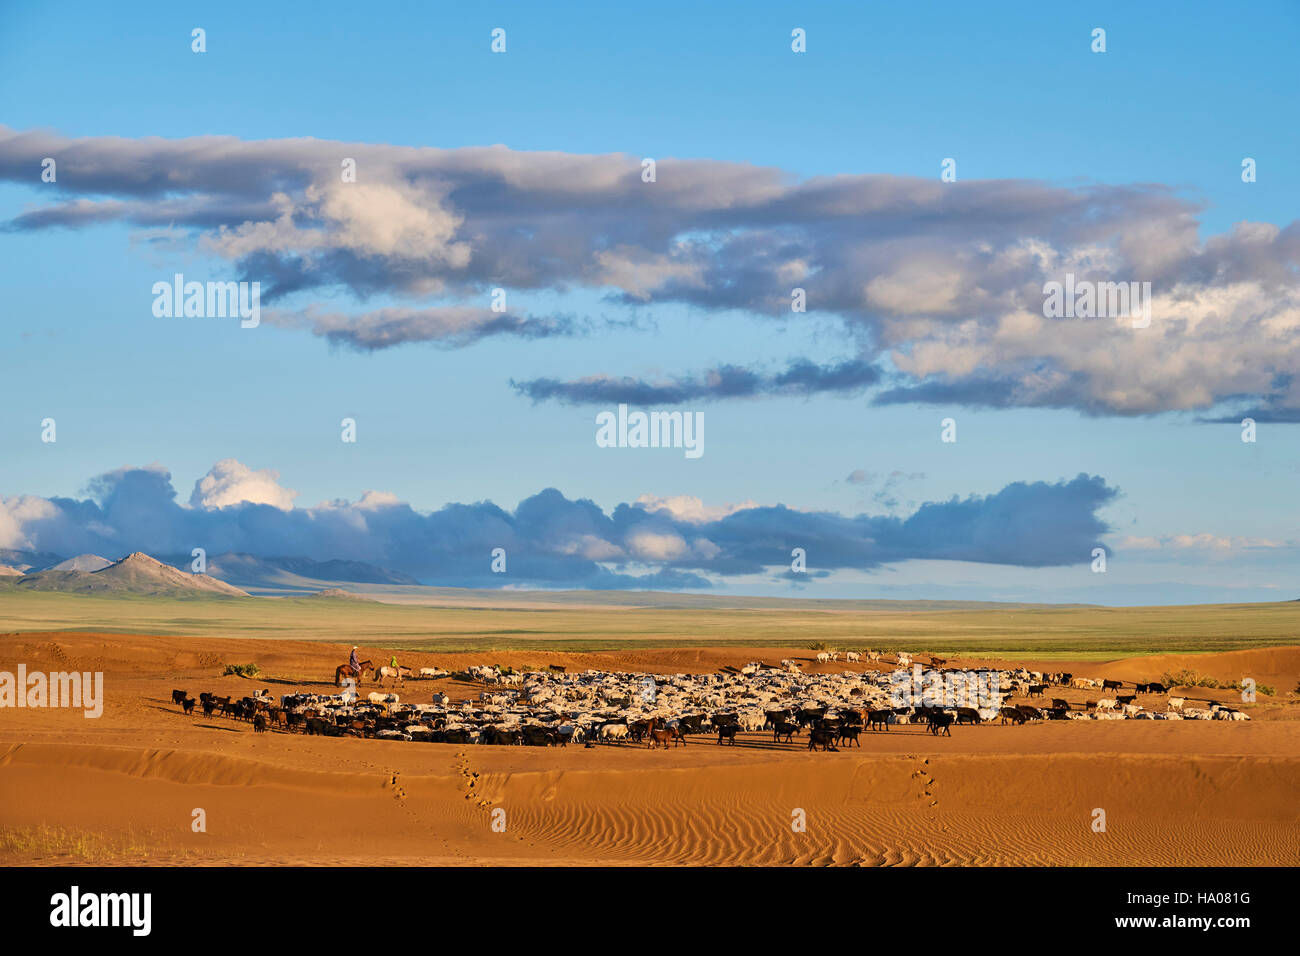 Mongolia, Zavkhan province, sheep herd in the deserted landscape of sand dunes in the steppe - Stock Image